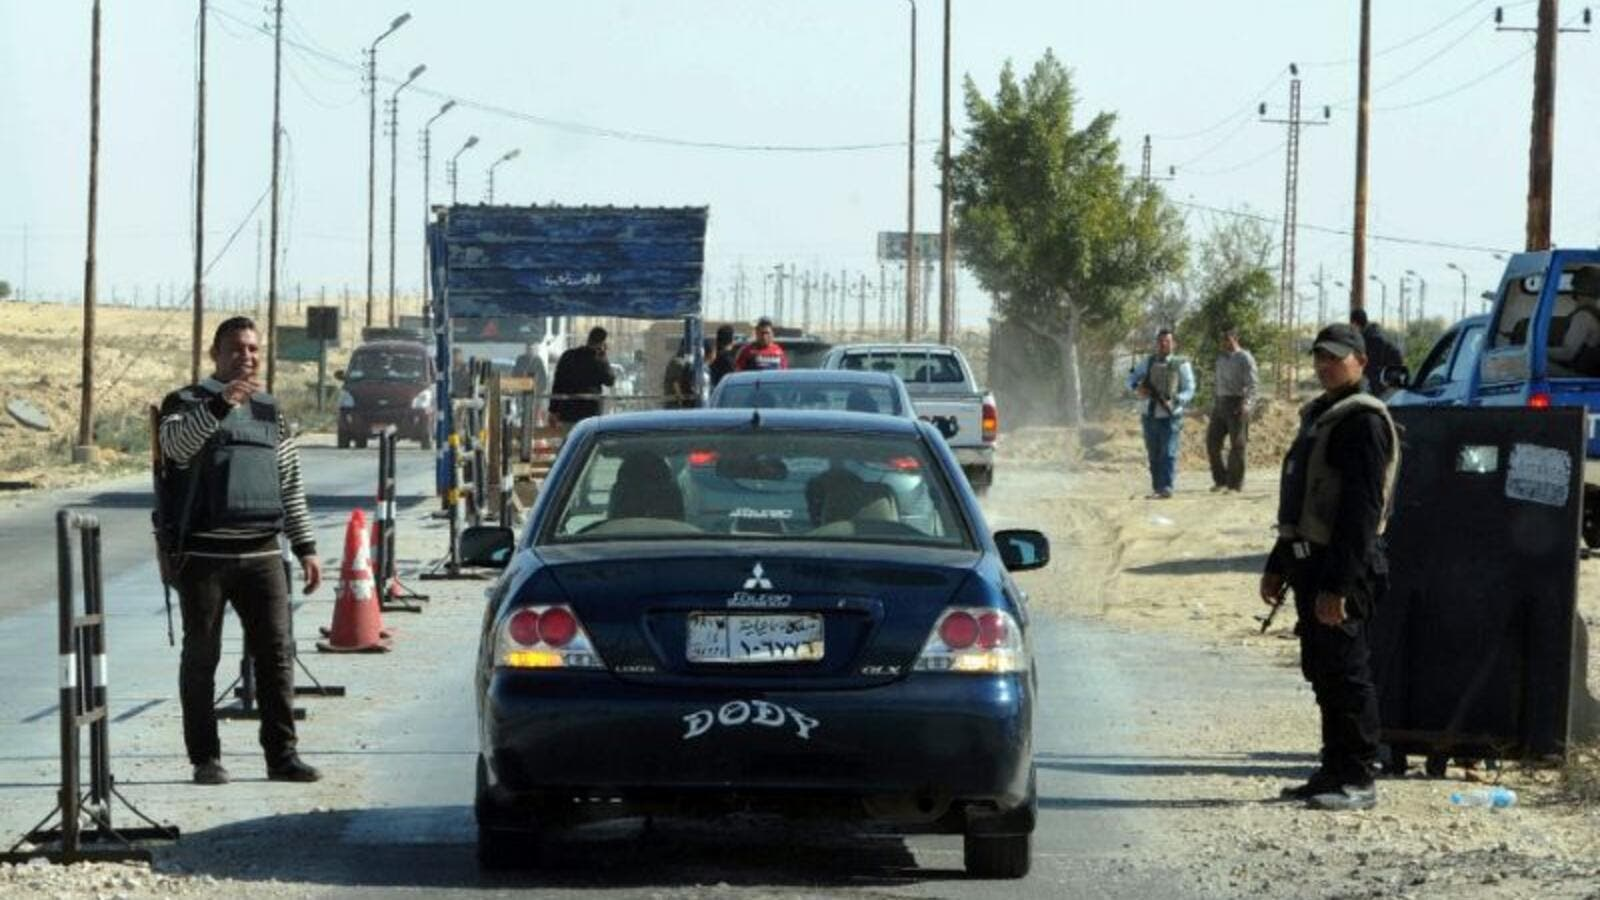 Egyptian police inspect cars at a checkpoint in North Sinai. (AFP/File)